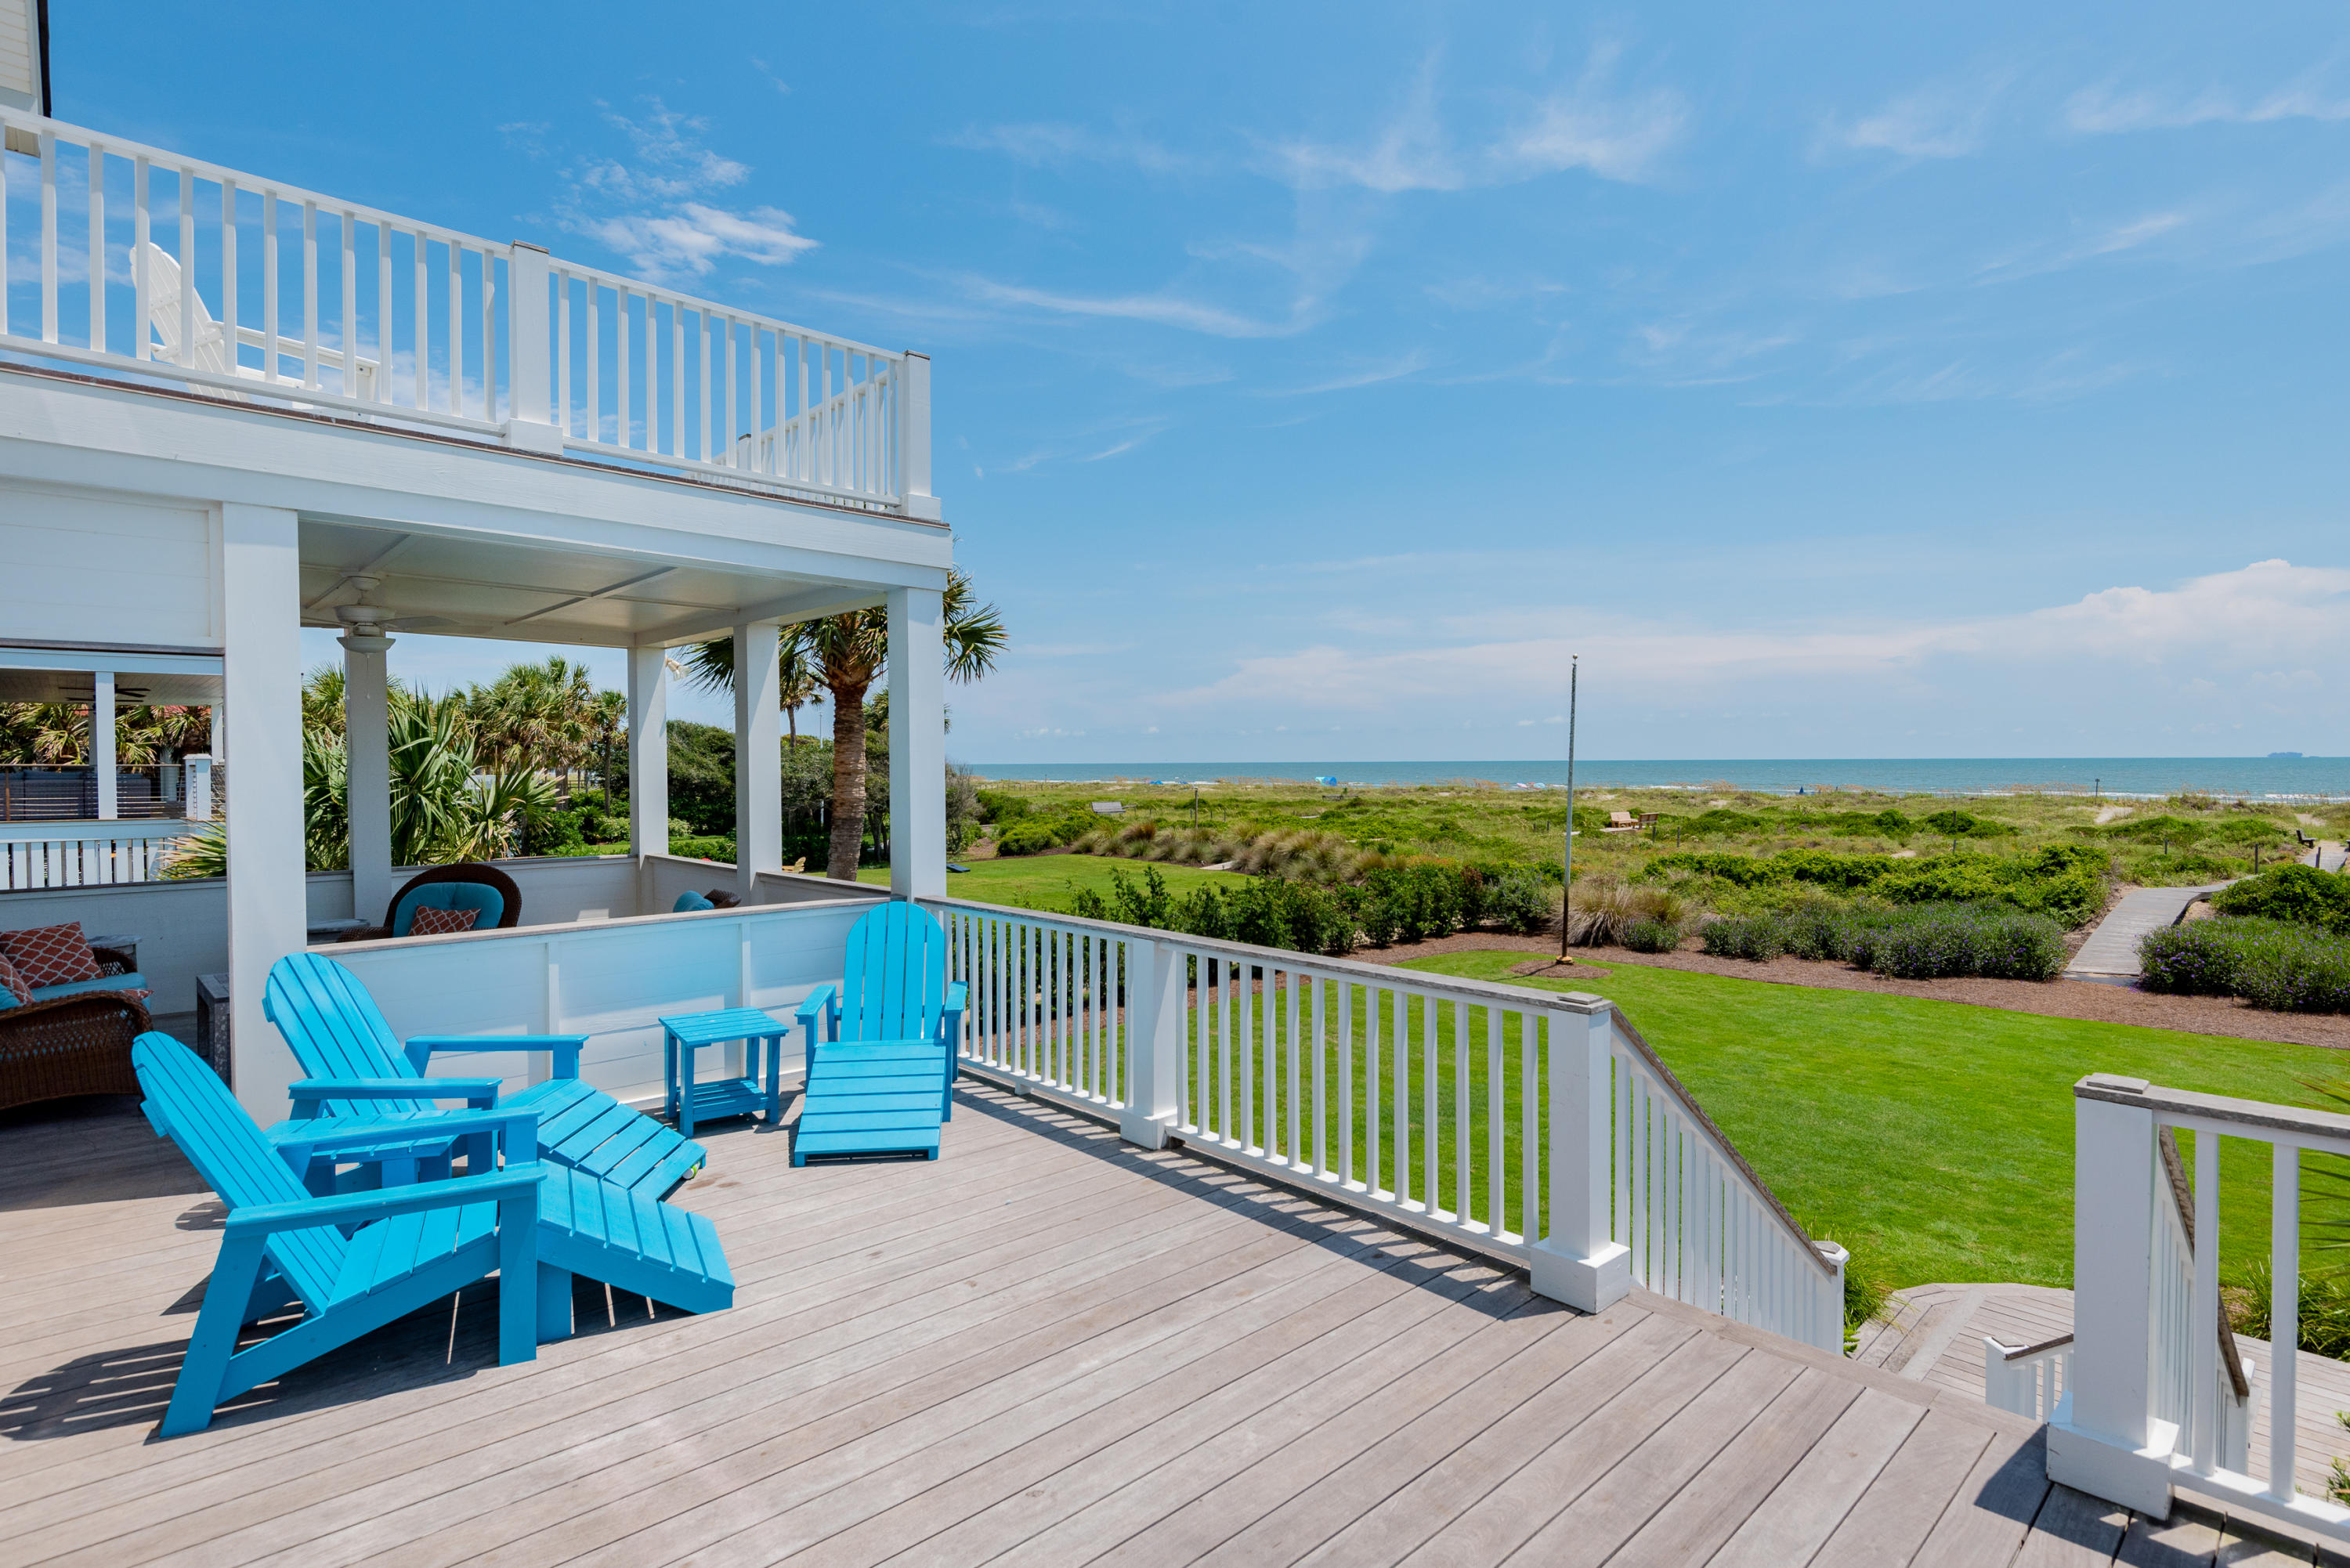 Isle of Palms Homes For Sale - 3808 Palm, Isle of Palms, SC - 20